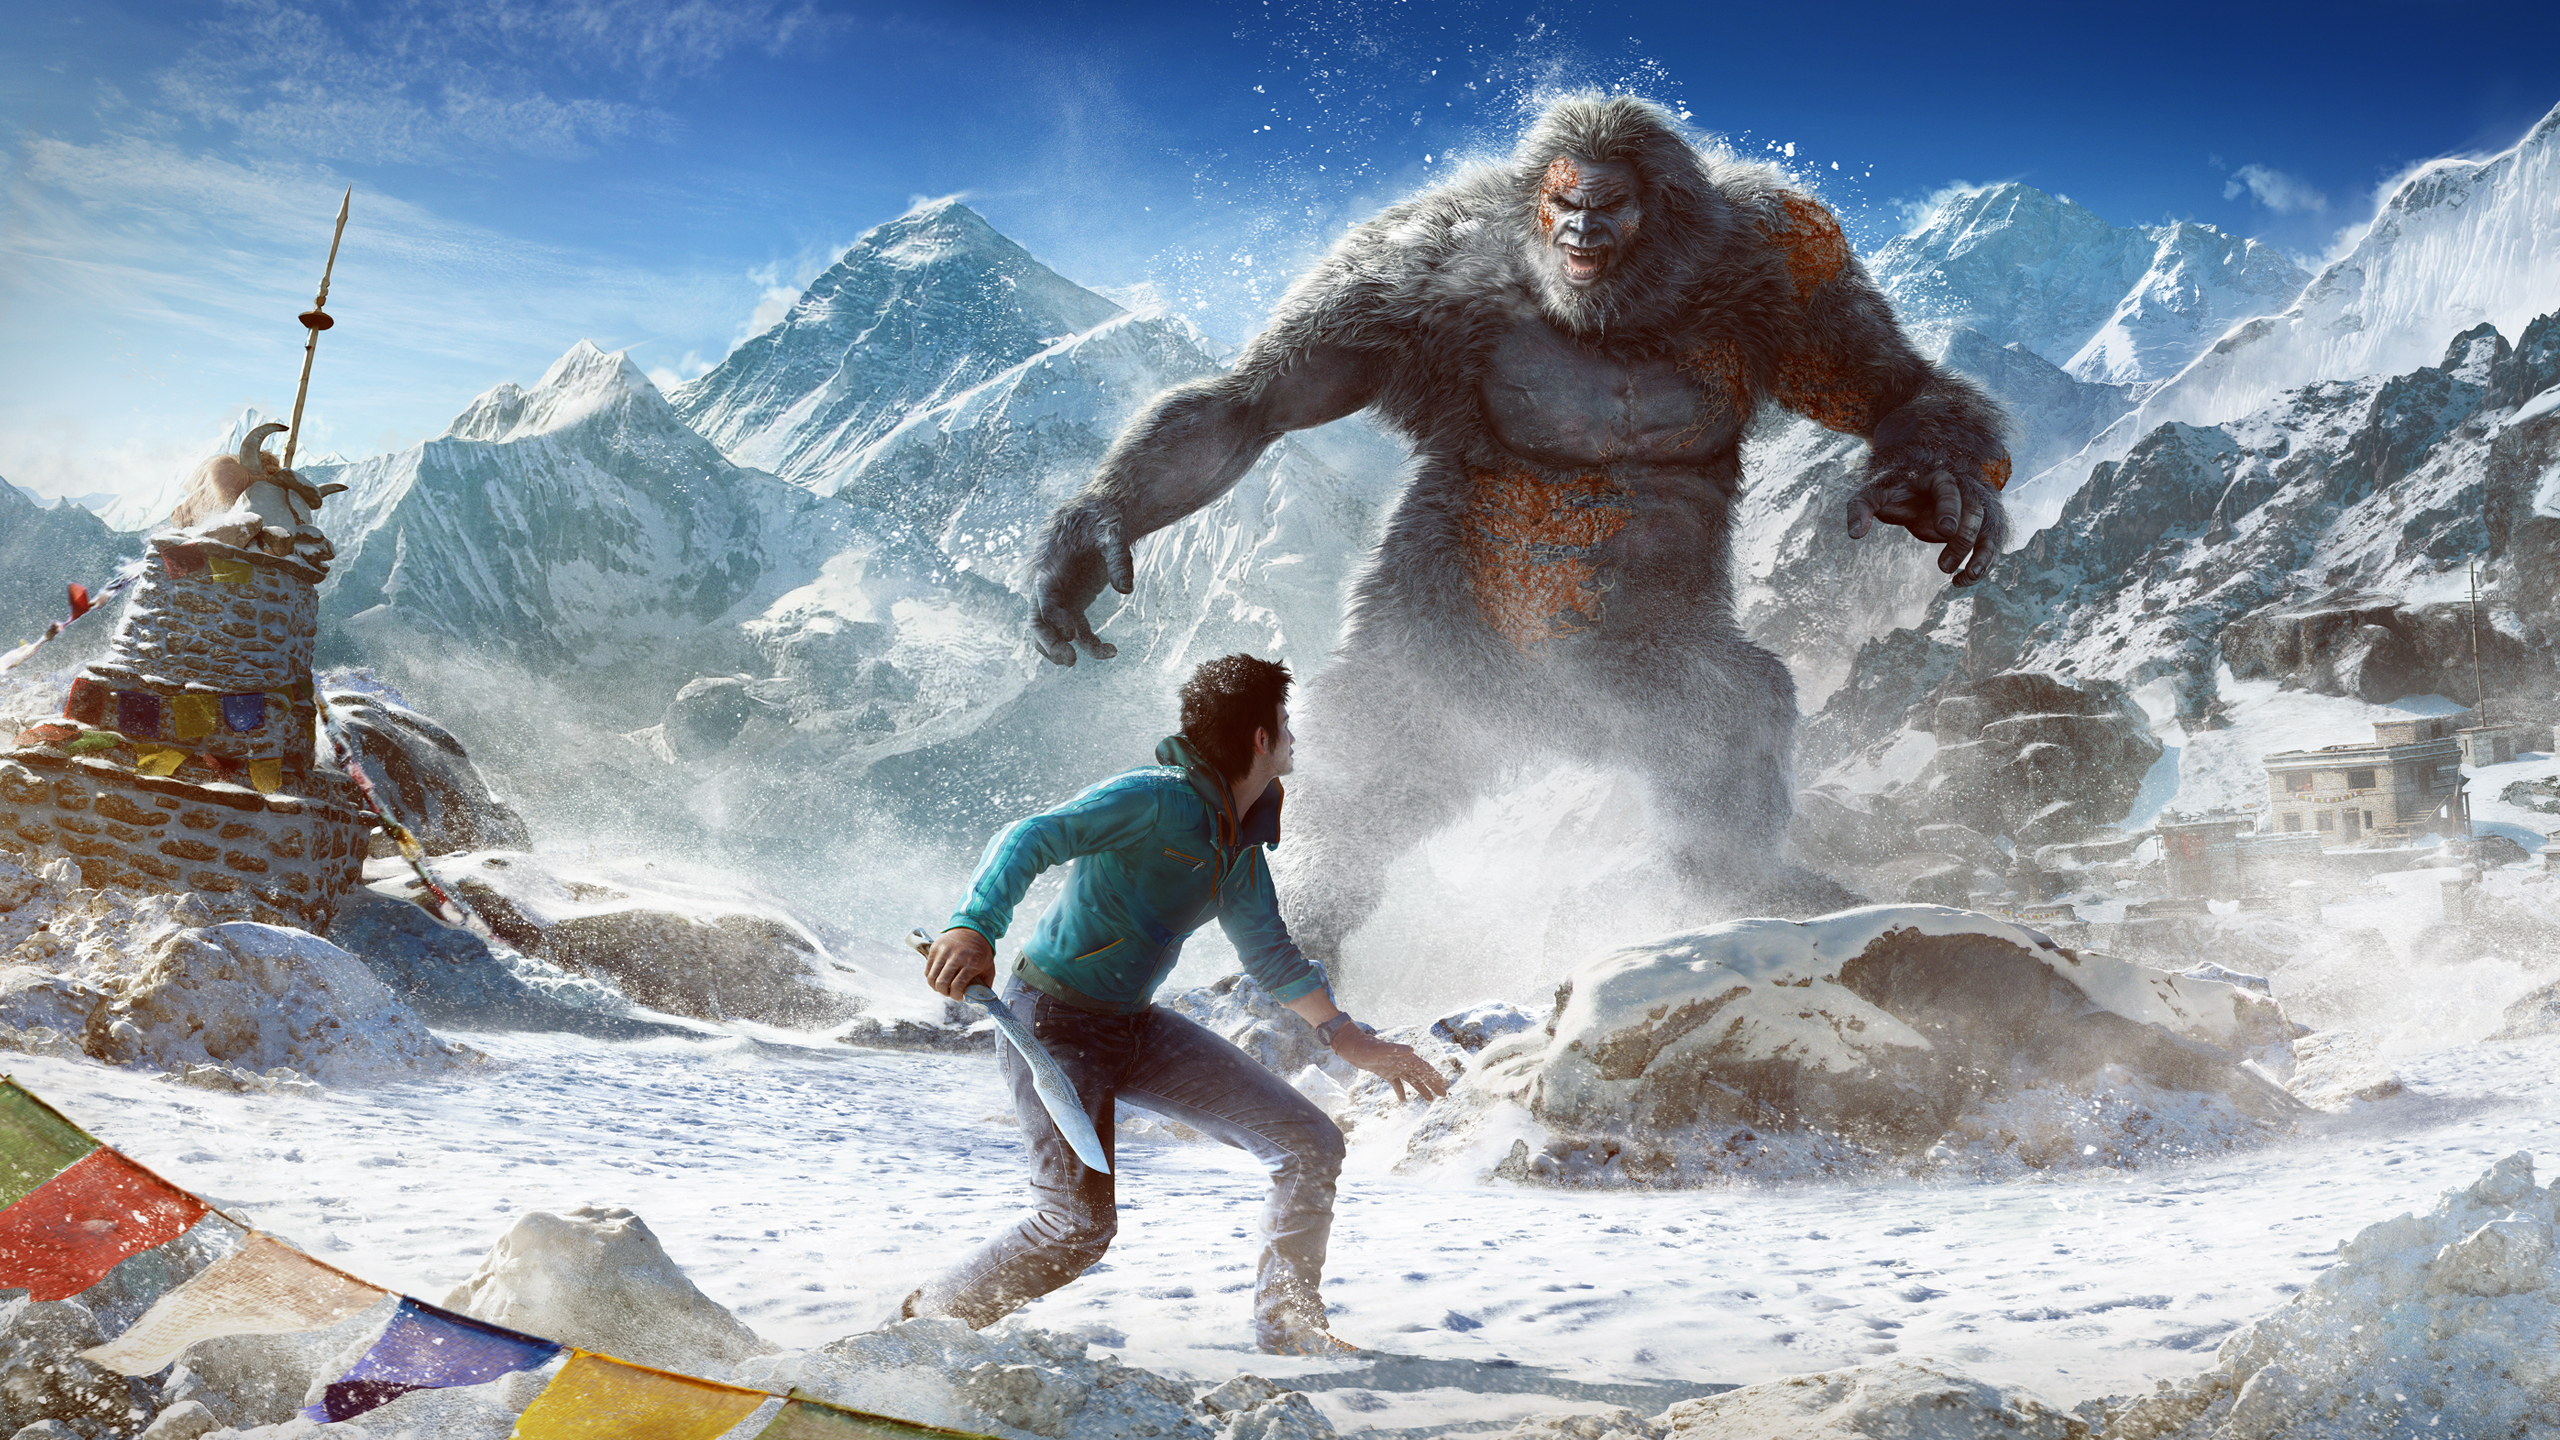 HD Wallpapers Far Cry 4 Valley of the Yetis